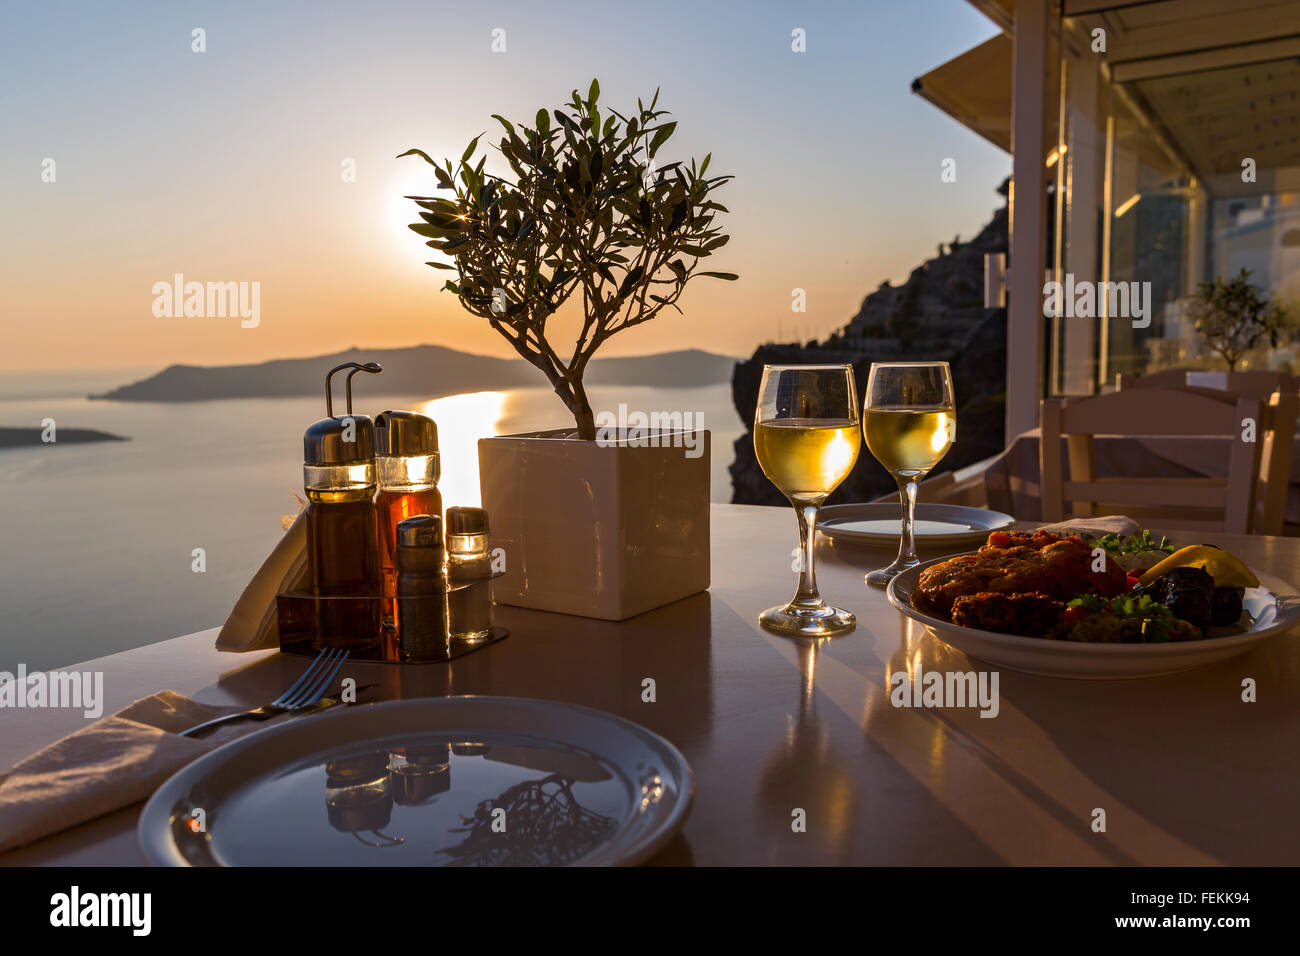 Romantic dinner for two on the island Santorini, Greece. Views of ...